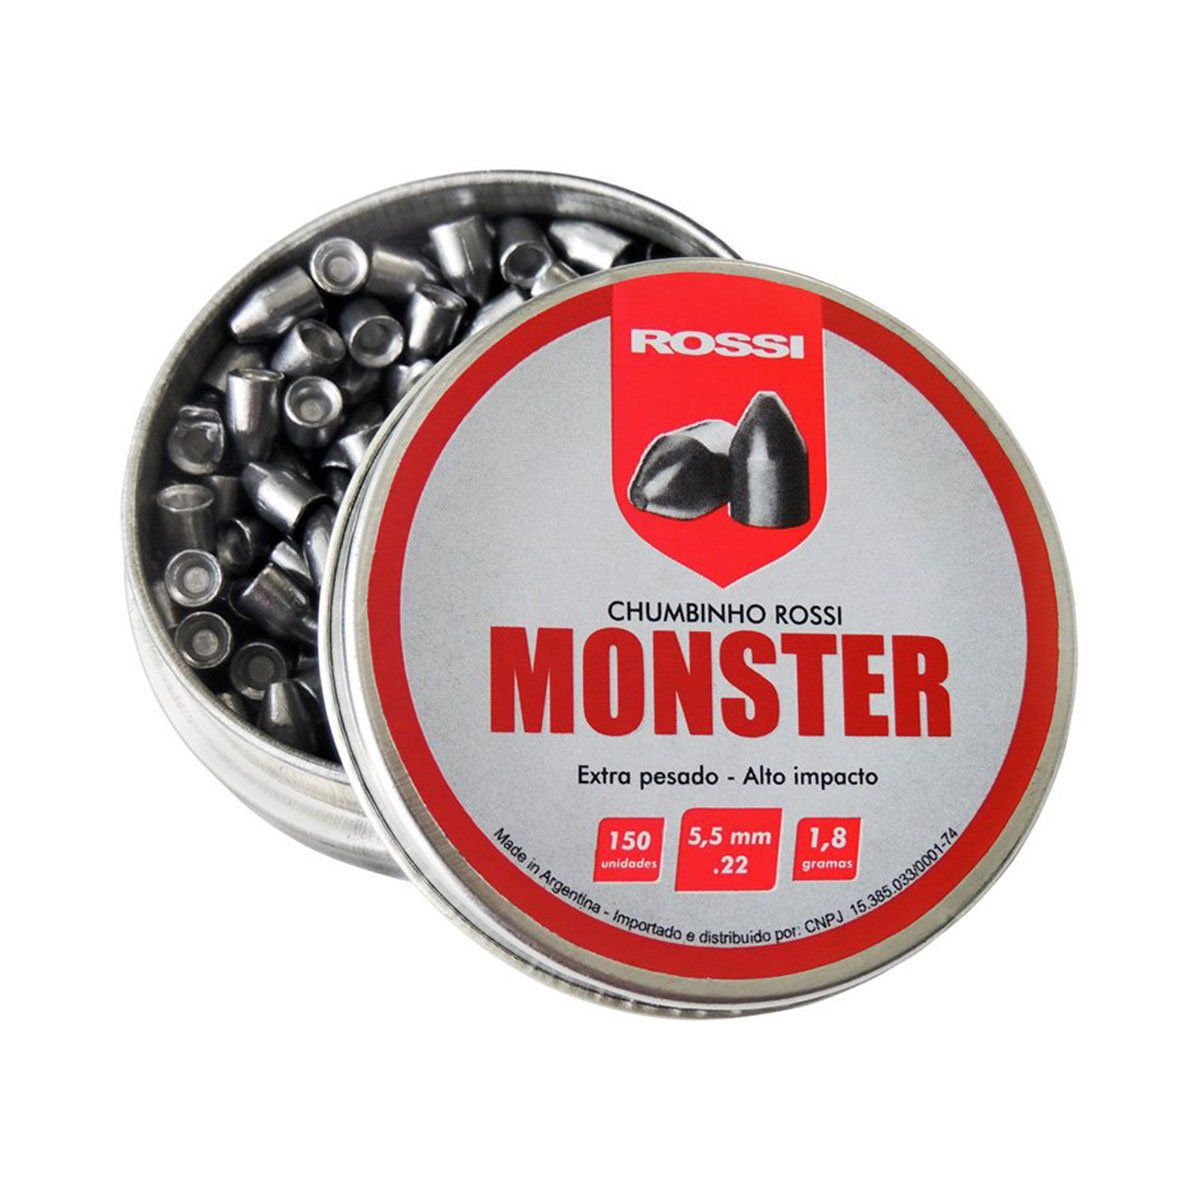 Chumbinho Rossi Monster 5,5MM